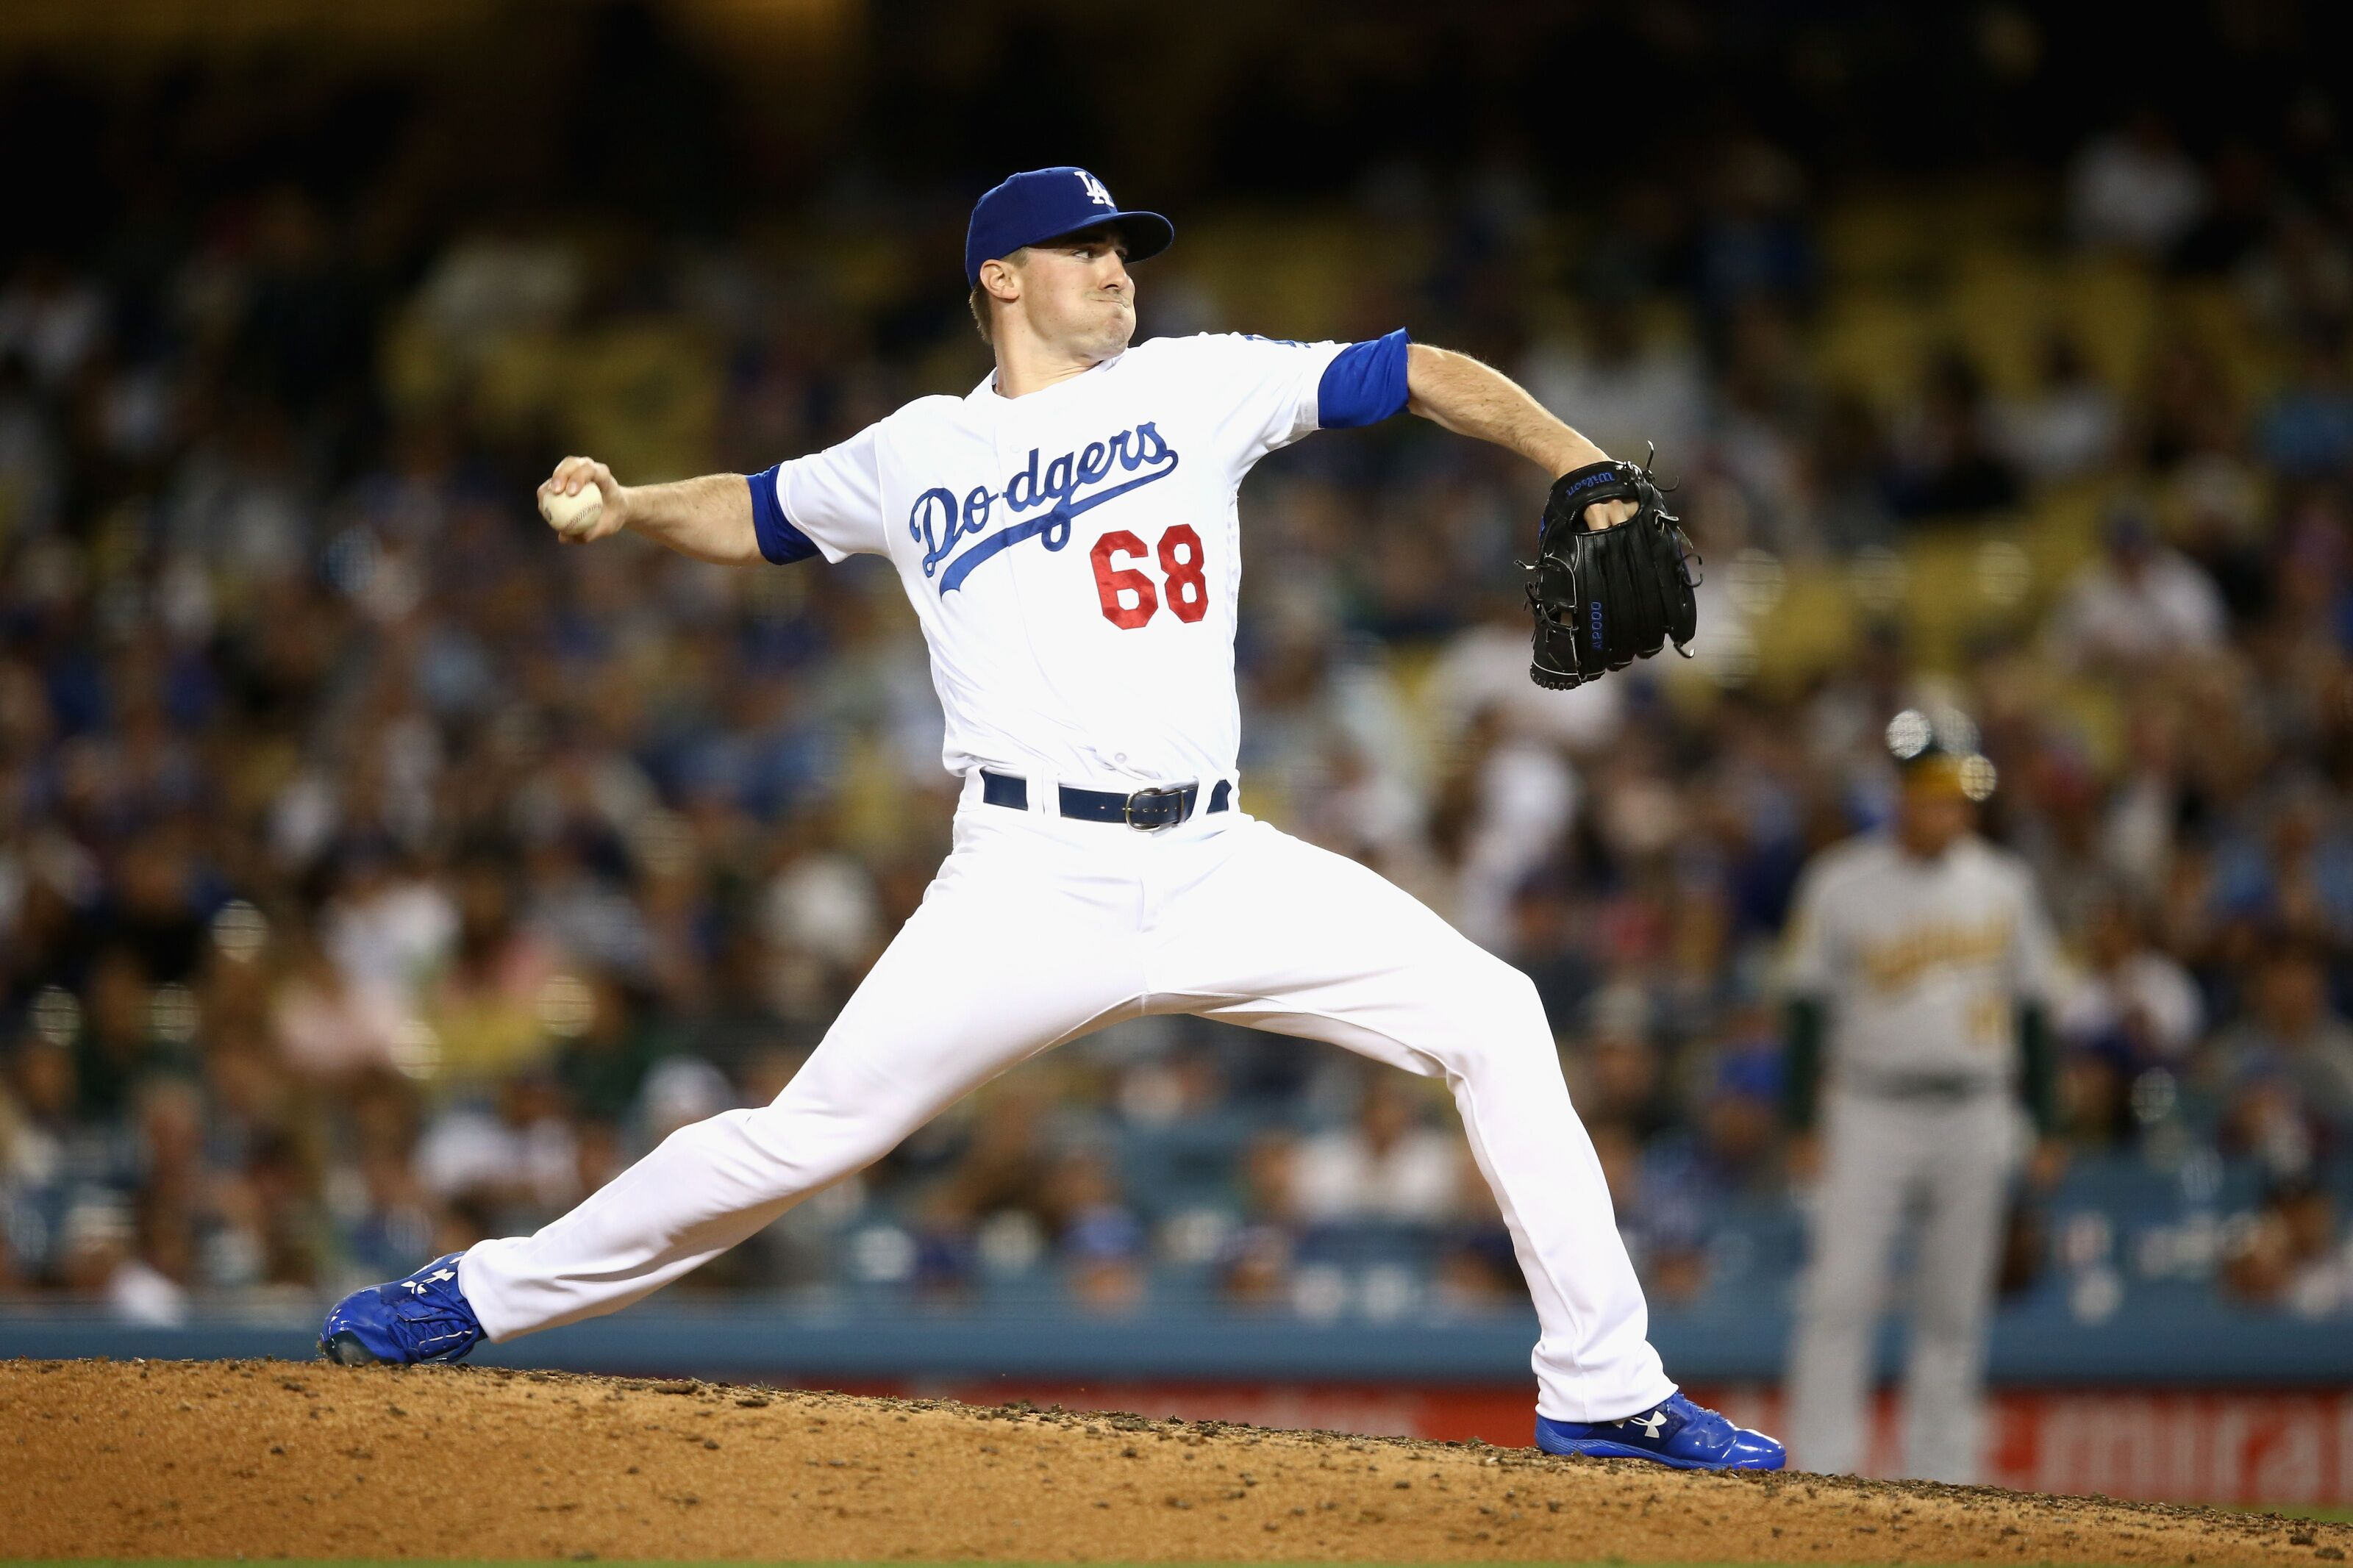 Dodgers Quick Hits: Goeddel brothers, Stripling, Roster Moves